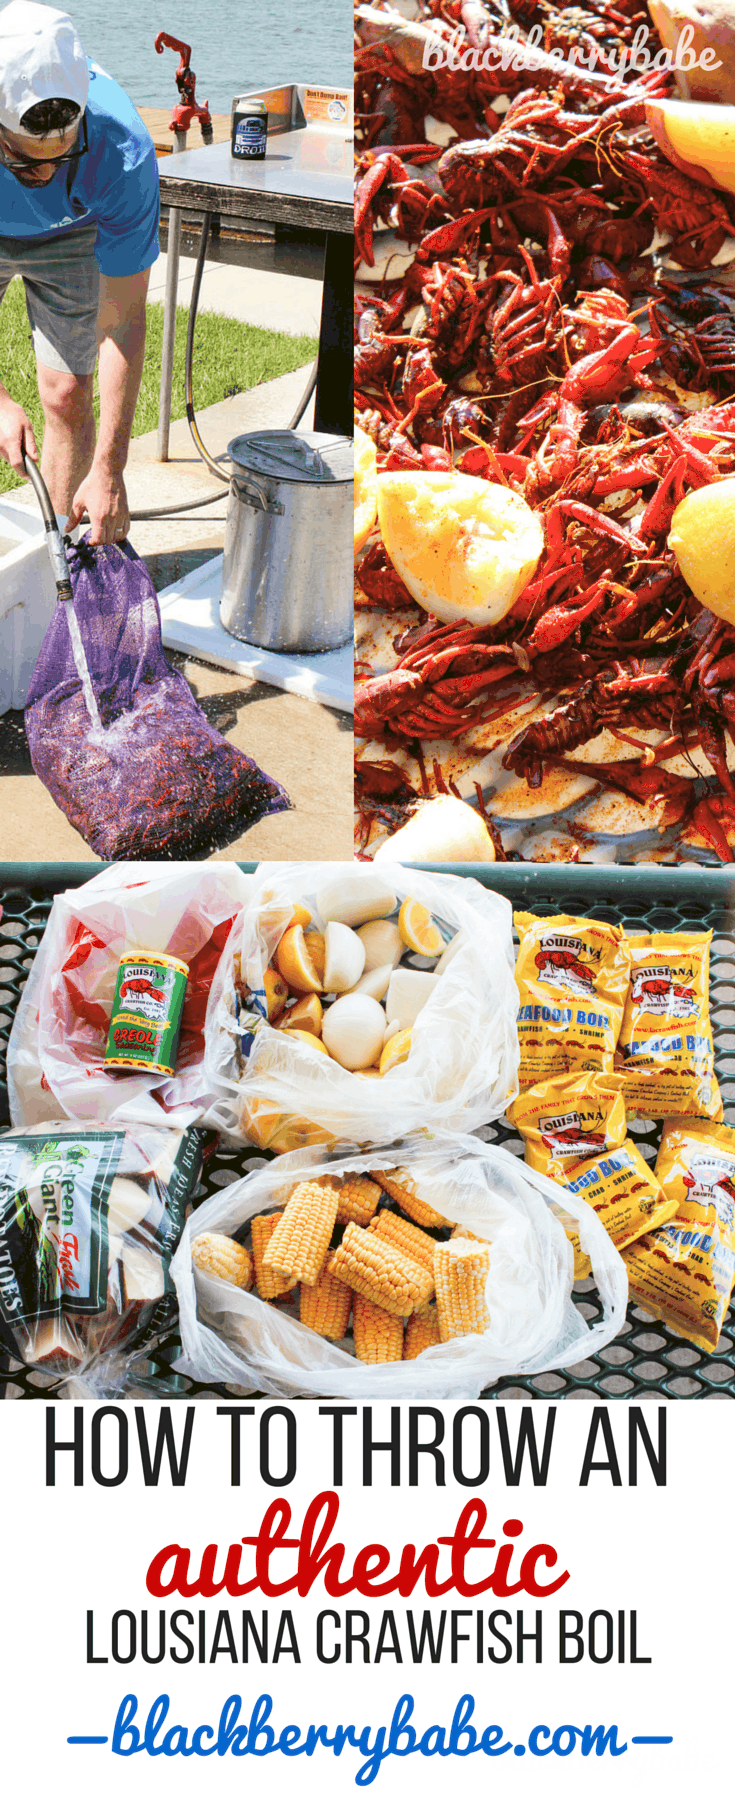 Louisiana Crawfish Boil Recipe by www.blackberrybabe.com (4)